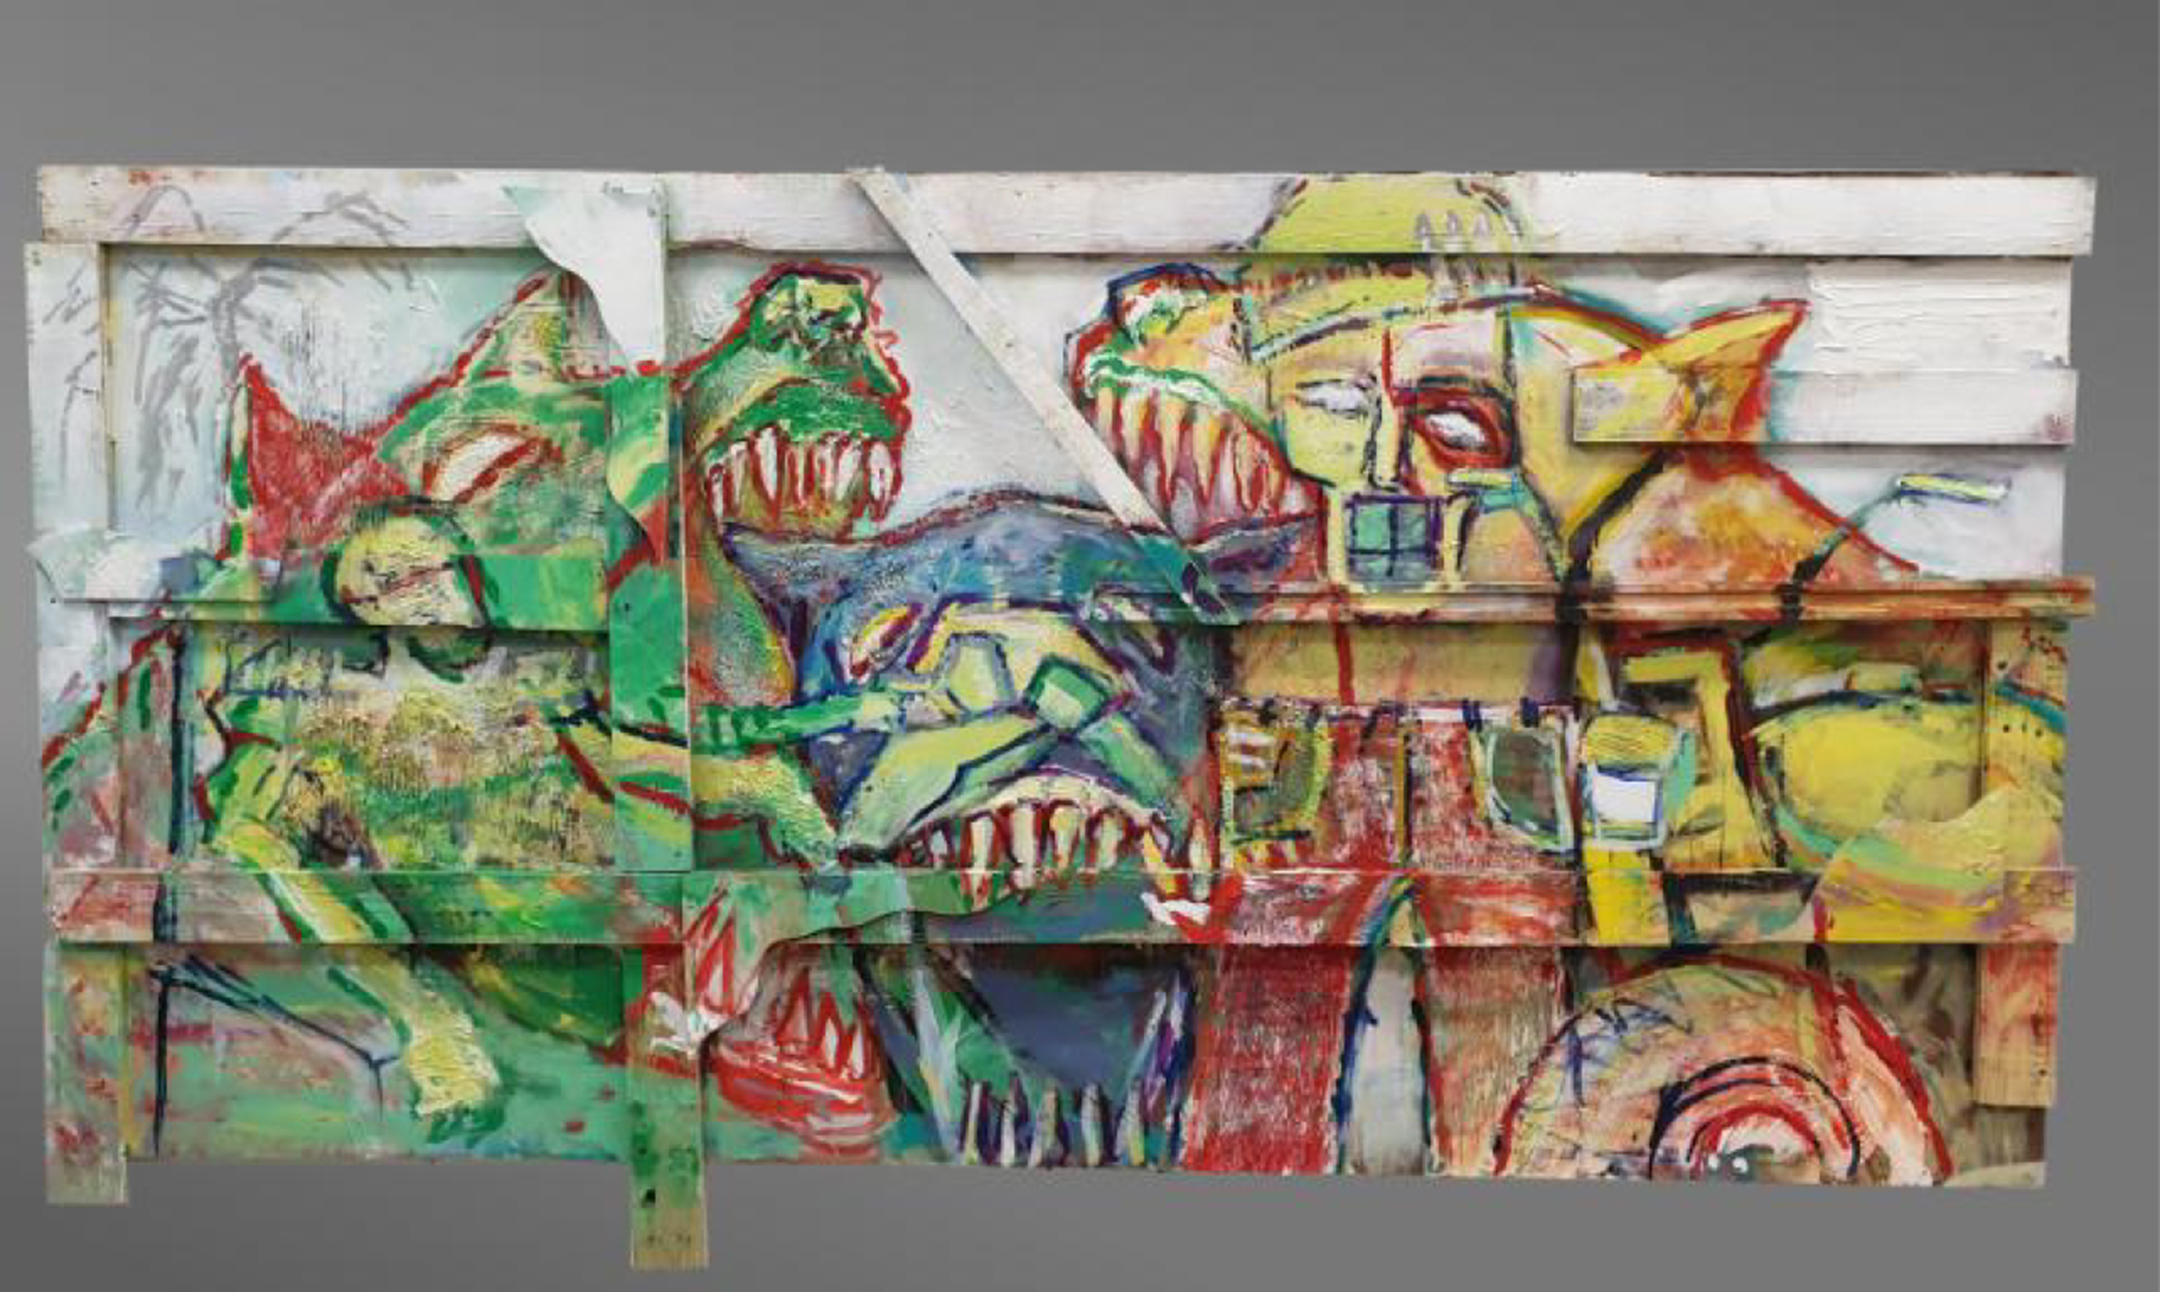 Large horizontal paneled art work, in yellow and green, depicting abstract monsters and characters